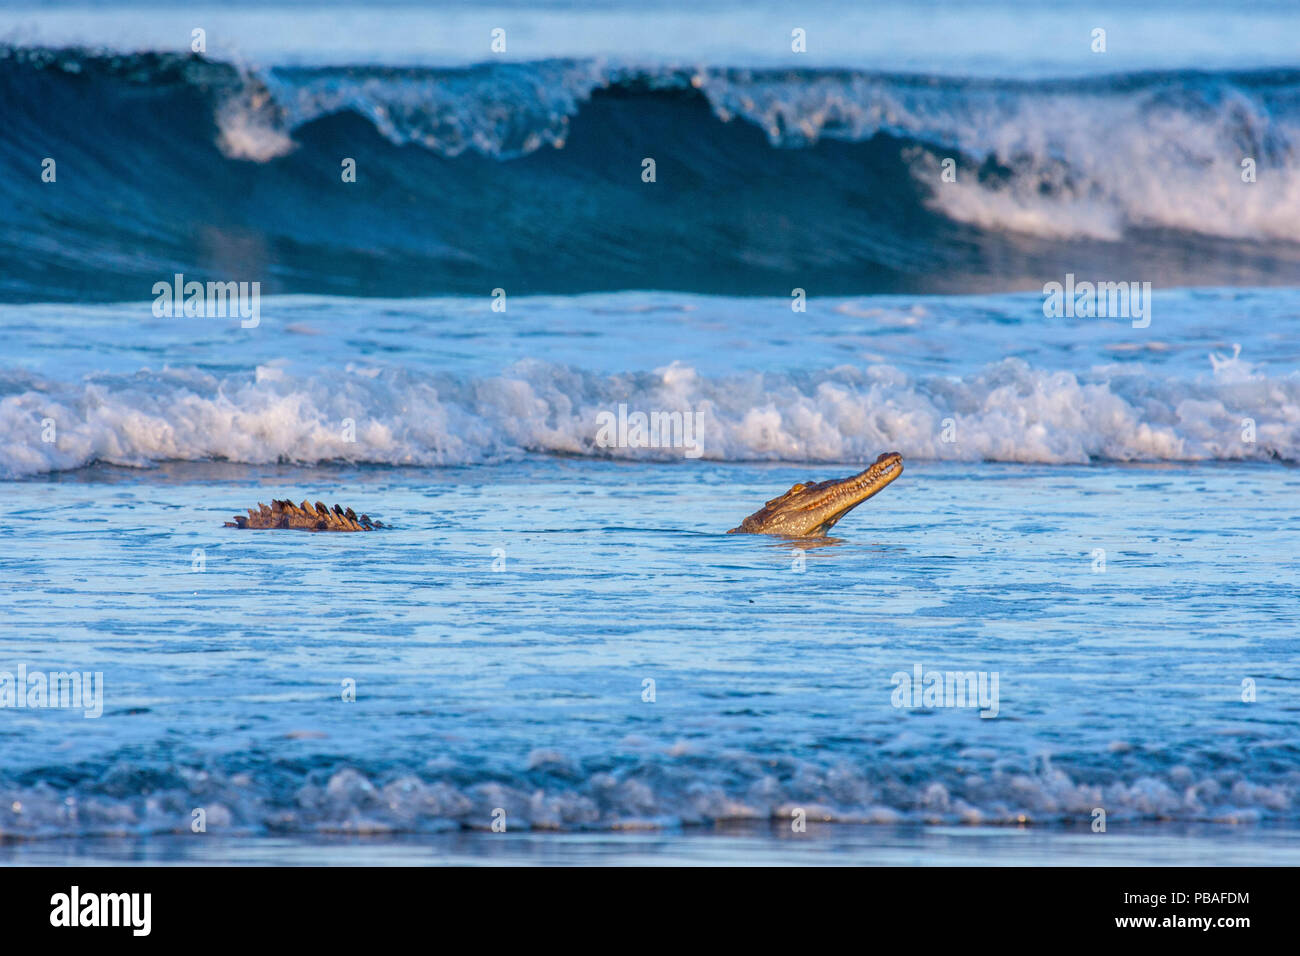 American crocodile (Crocodylus acutus) hunting hatchling Olive Ridley turtles. in the shallows of Nancite Beach, Santa Rosa National Park, Costa Rica. - Stock Image